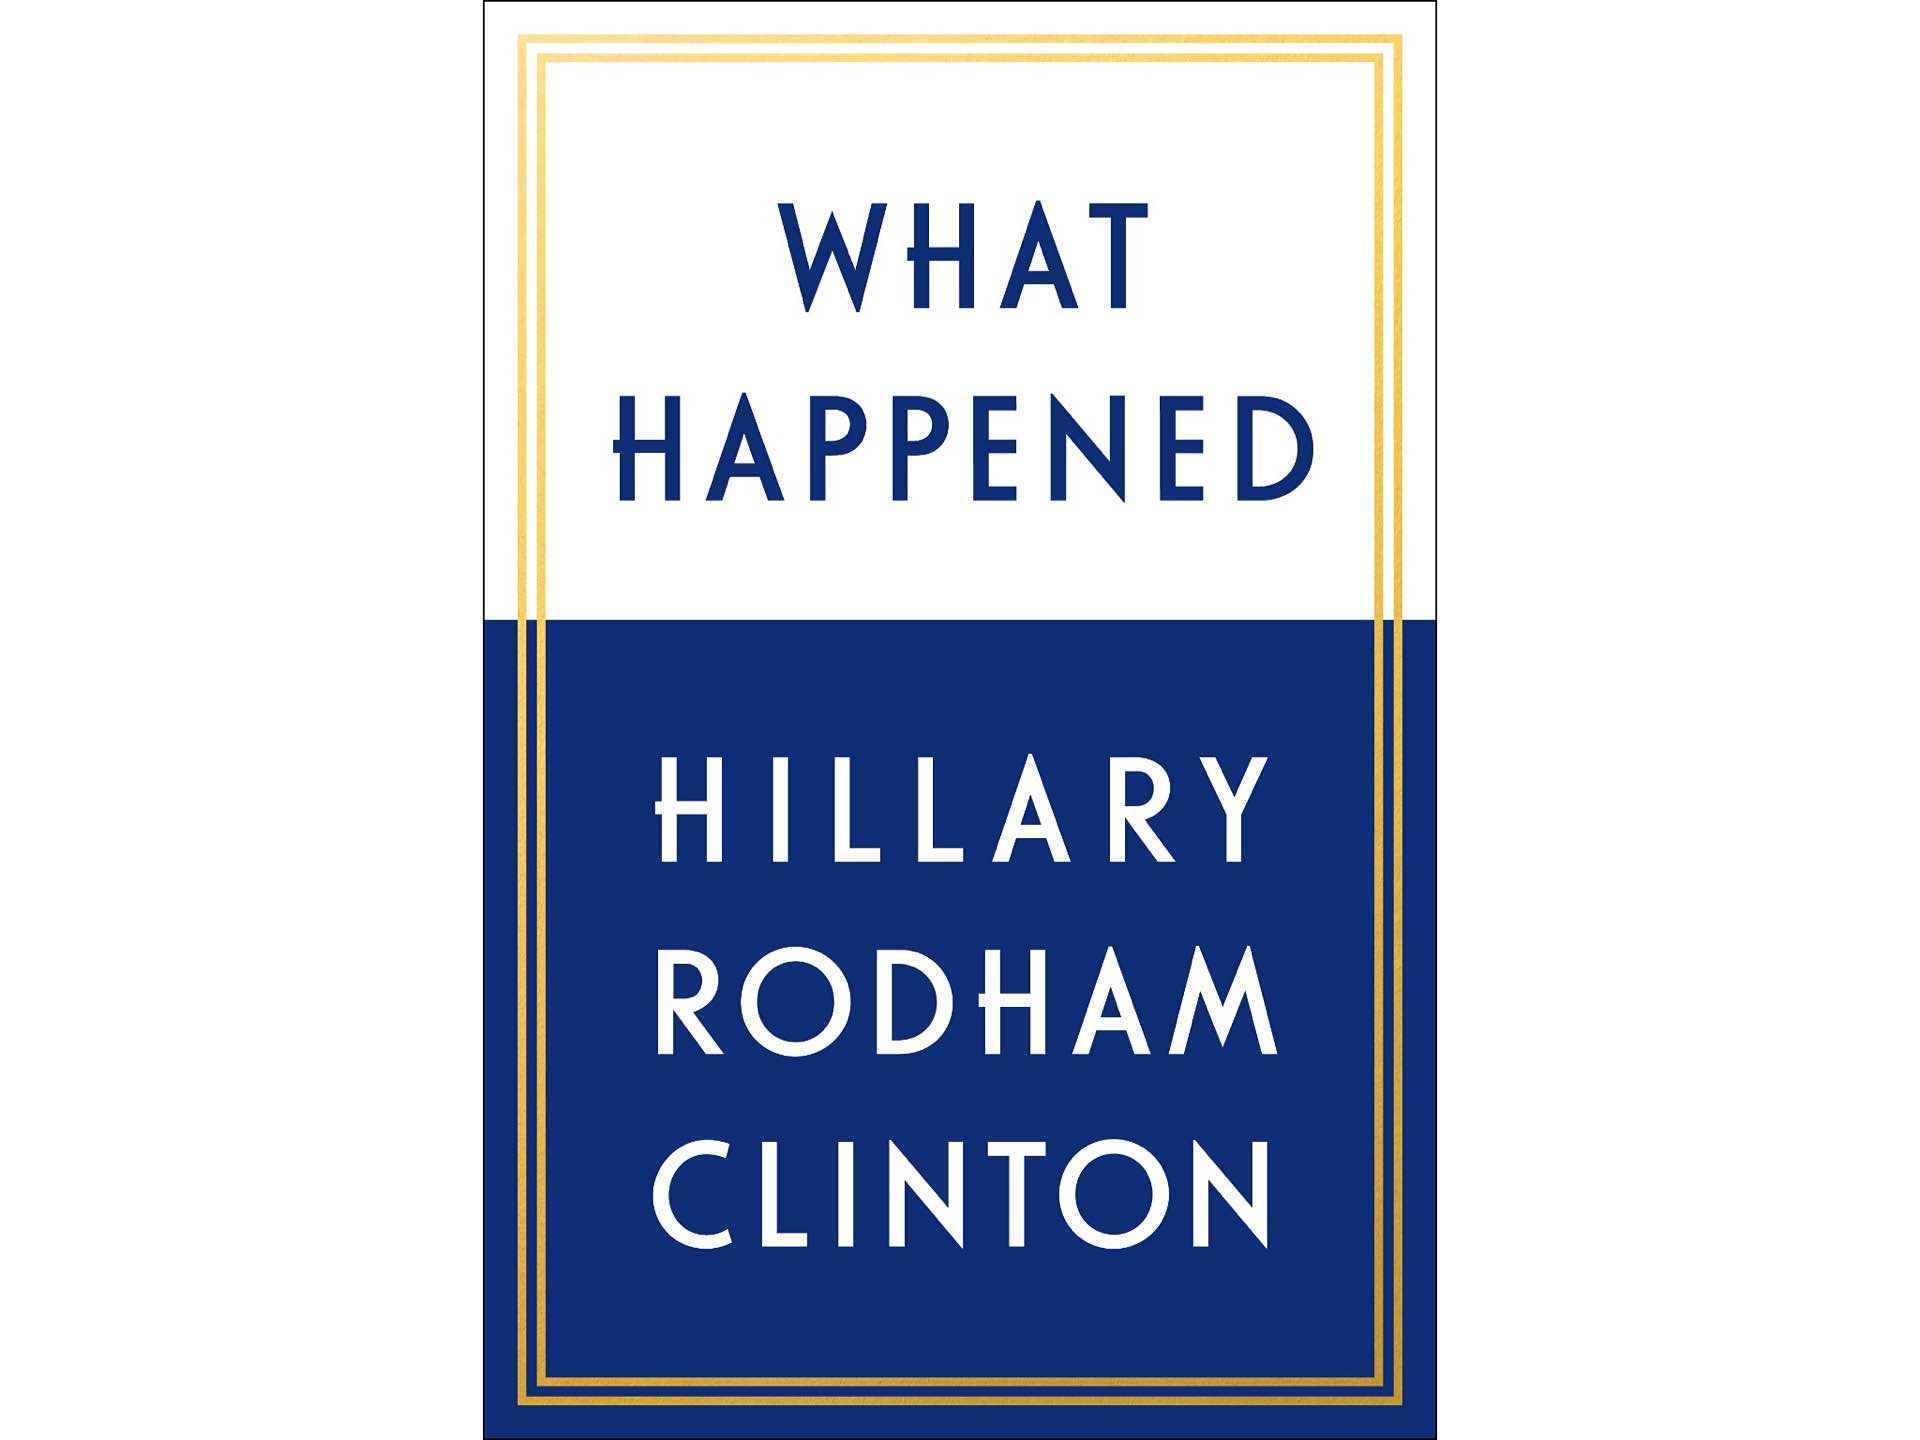 what-happened-by-hillary-clinton